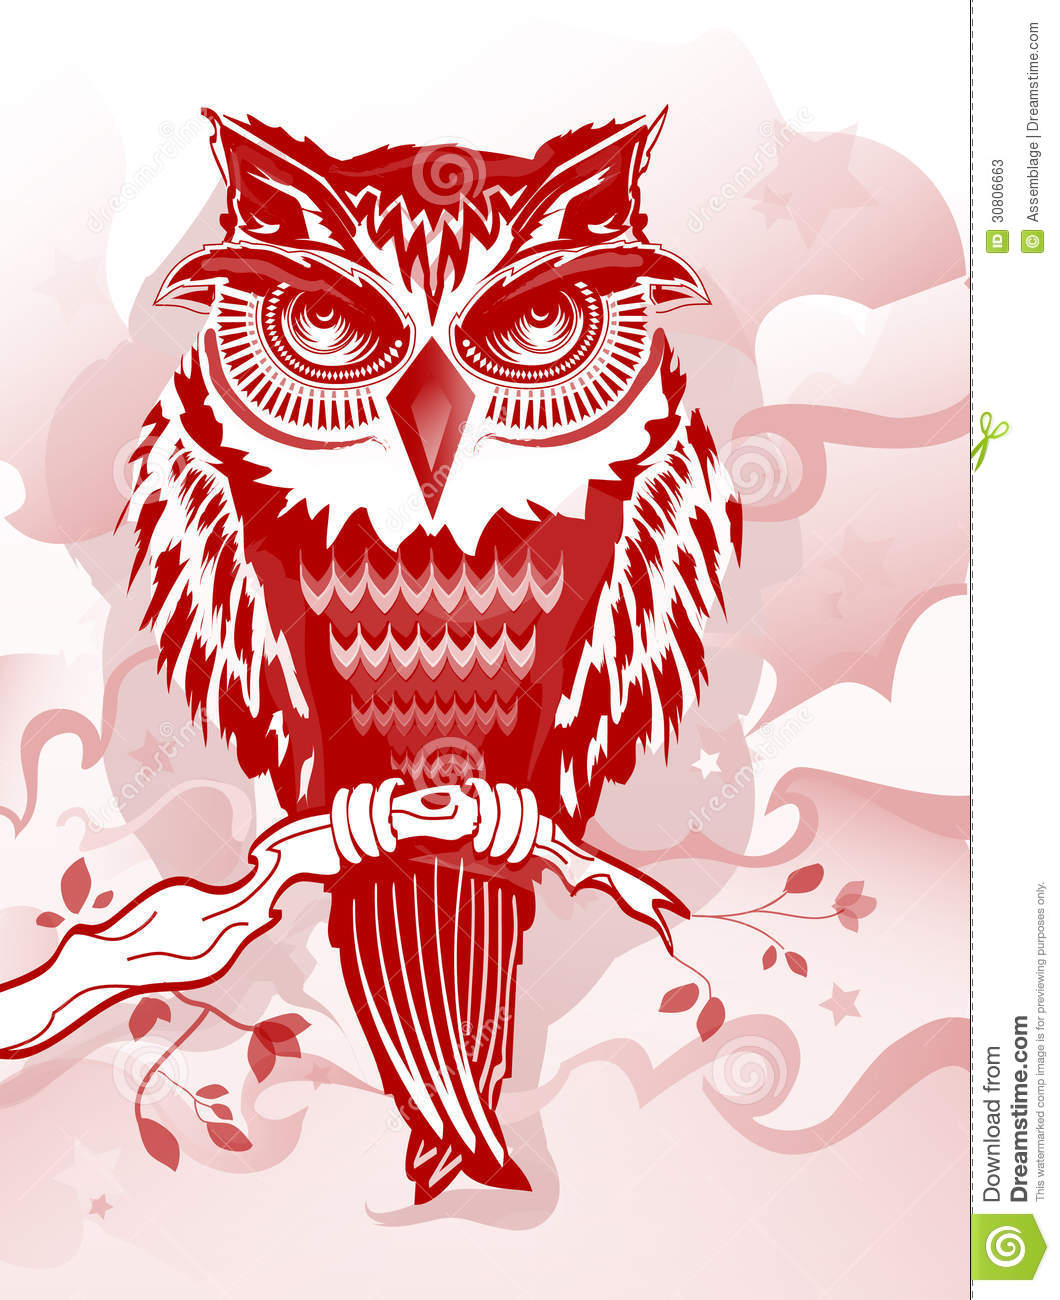 Red Owl Illustration For Flyers Books And More Stock Photos Image